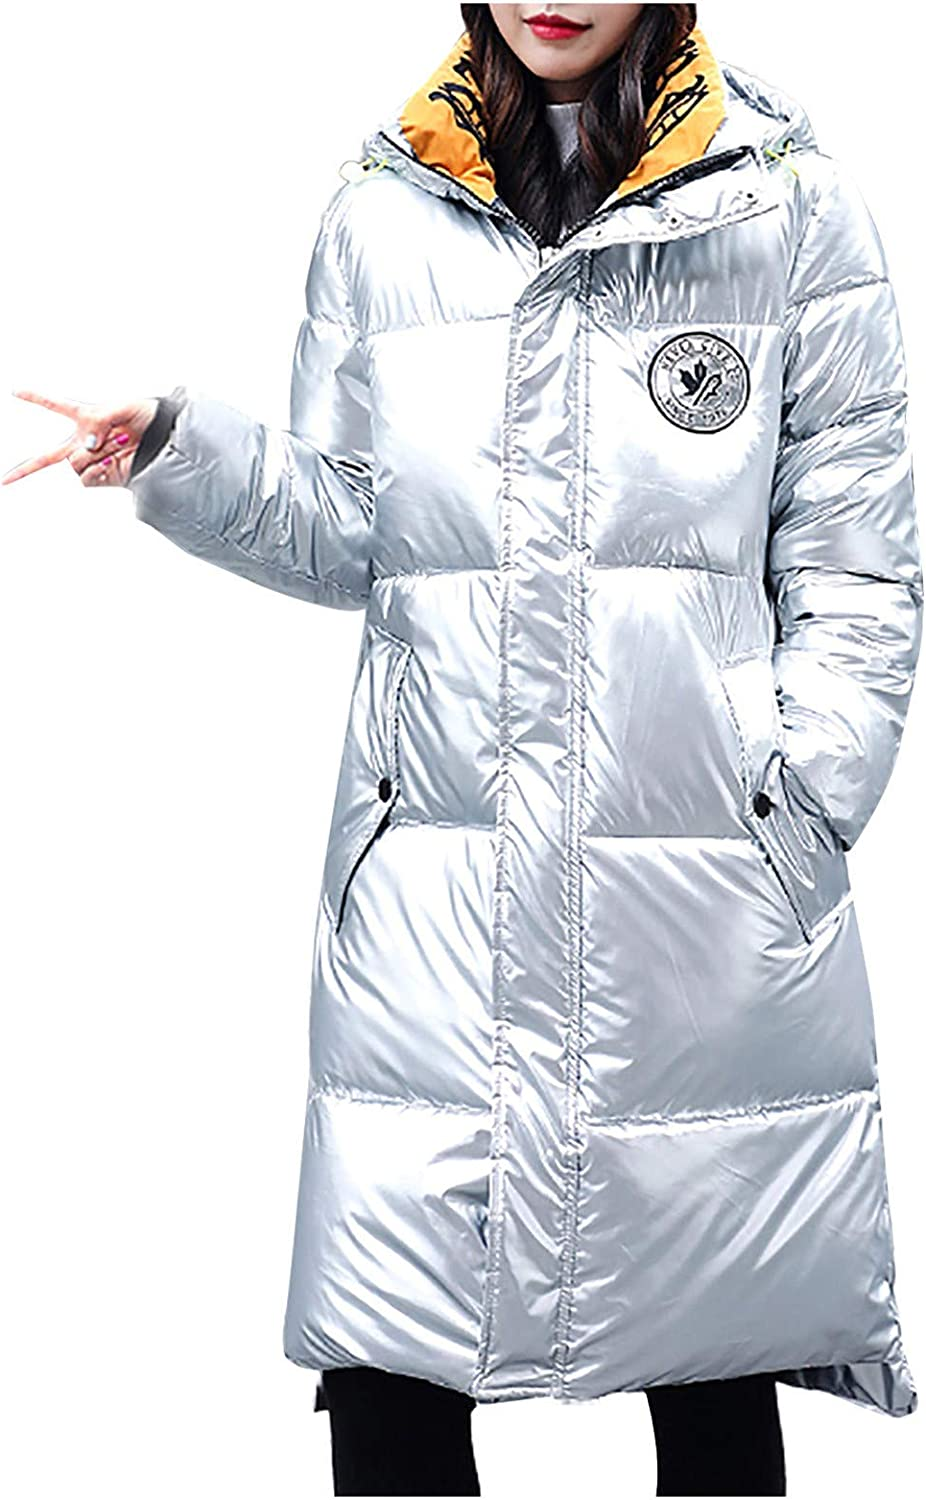 Giulot Women's Down Puffer Jacket Classic Long Quilted Parka Hooded Jackets Ultra Lightweight Metallic Shiny Warmth Outerwear